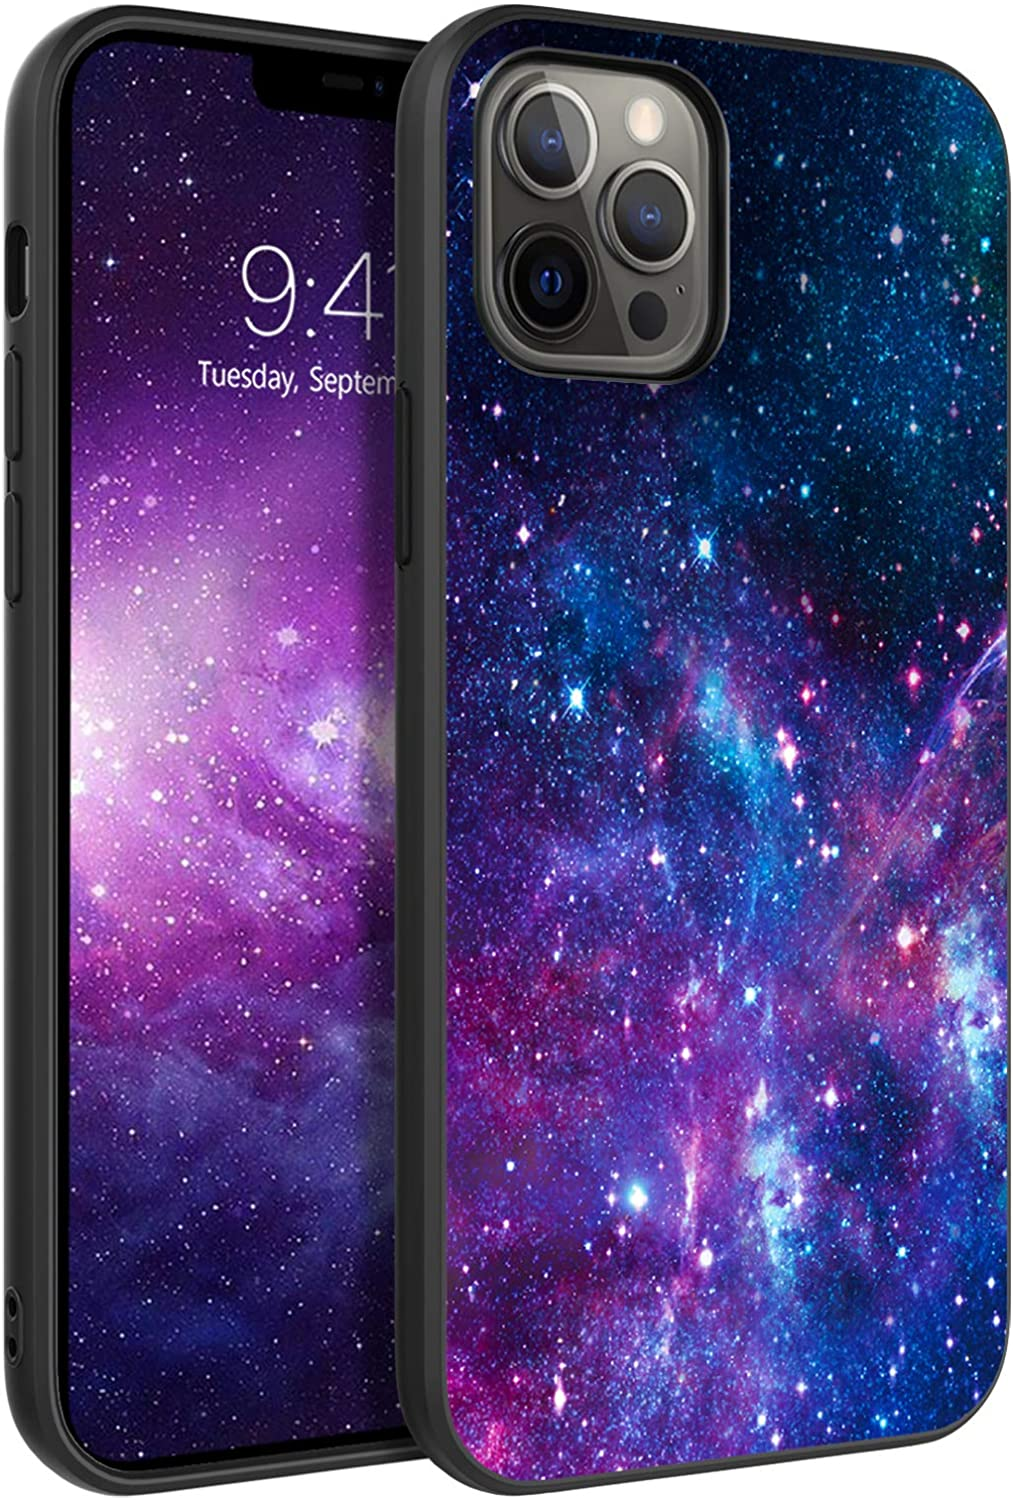 BENTOBEN Compatible with iPhone 12 Pro Max Case, Slim Fit Glow in The Dark Soft Flexible Shockproof Bumper Protective Cute Cases Compatible with Apple iPhone 12 Pro Max 6.7